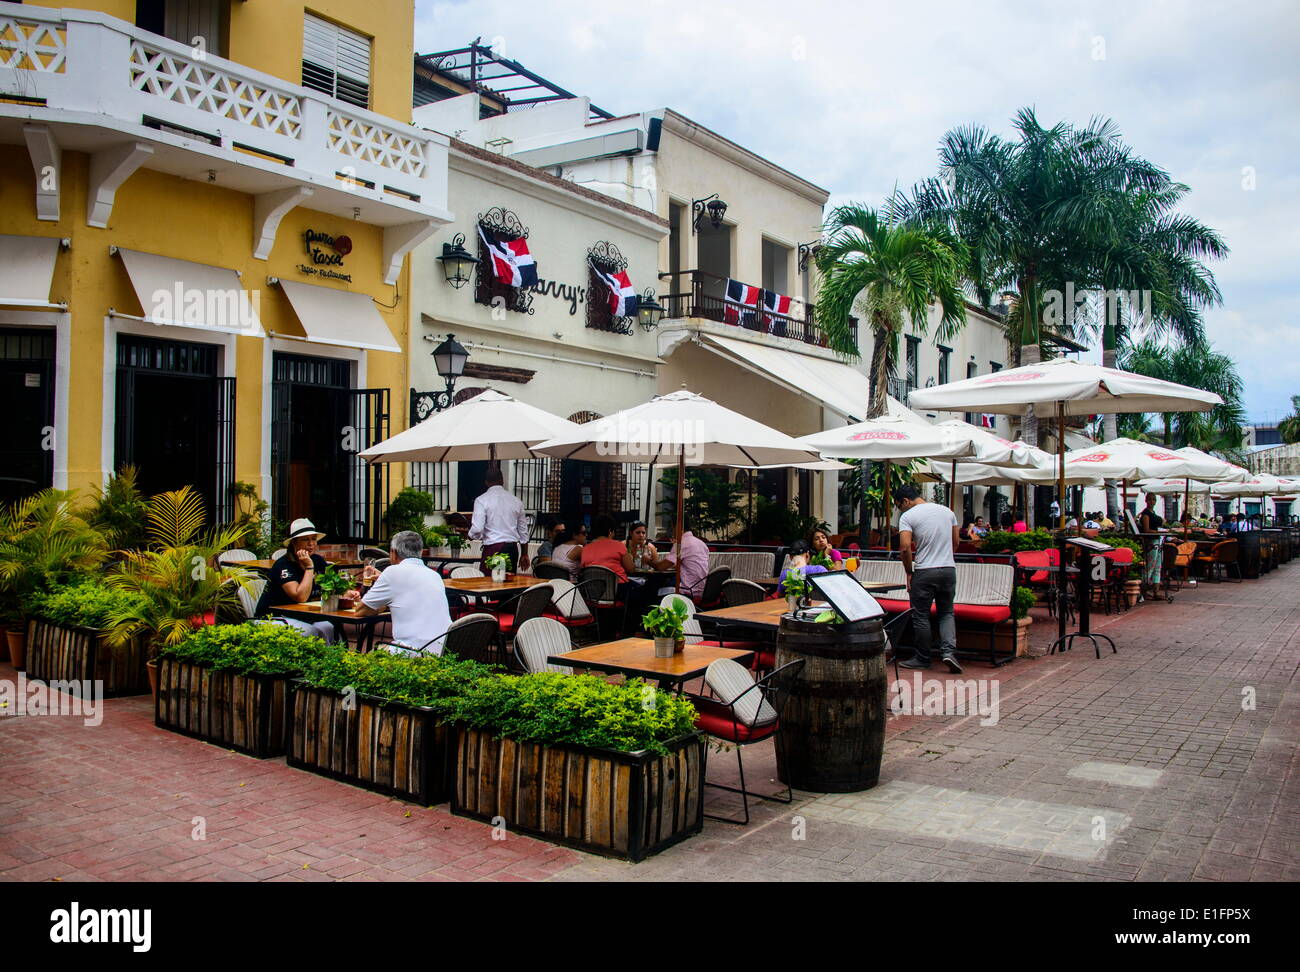 Restaurants on Plaza Espagna in the Old Town, UNESCO Site, Santo Domingo, Dominican Republic, West Indies, Caribbean - Stock Image